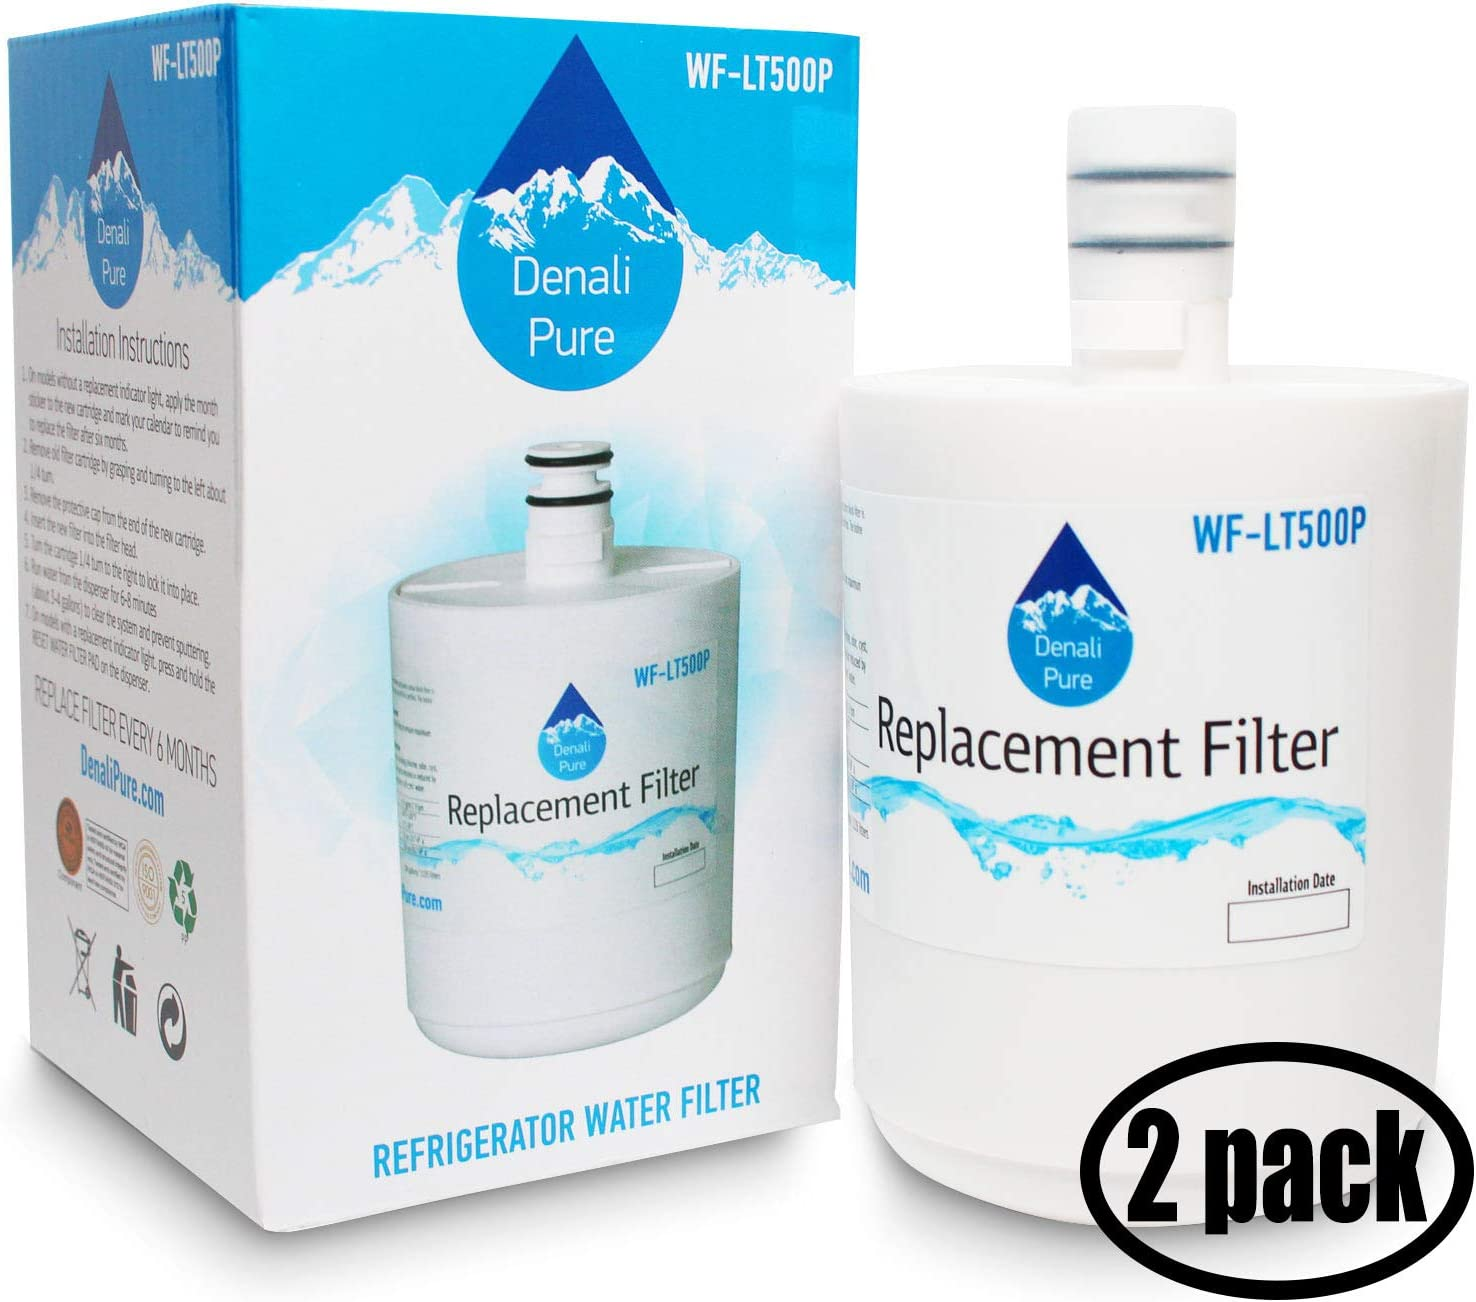 2-Pack Replacement for Sears/Kenmore 79551014011 Refrigerator Water Filter - Compatible with Sears/Kenmore ADQ72910902, GEN11042FR-08, 46-9890 Fridge Water Filter Cartridge